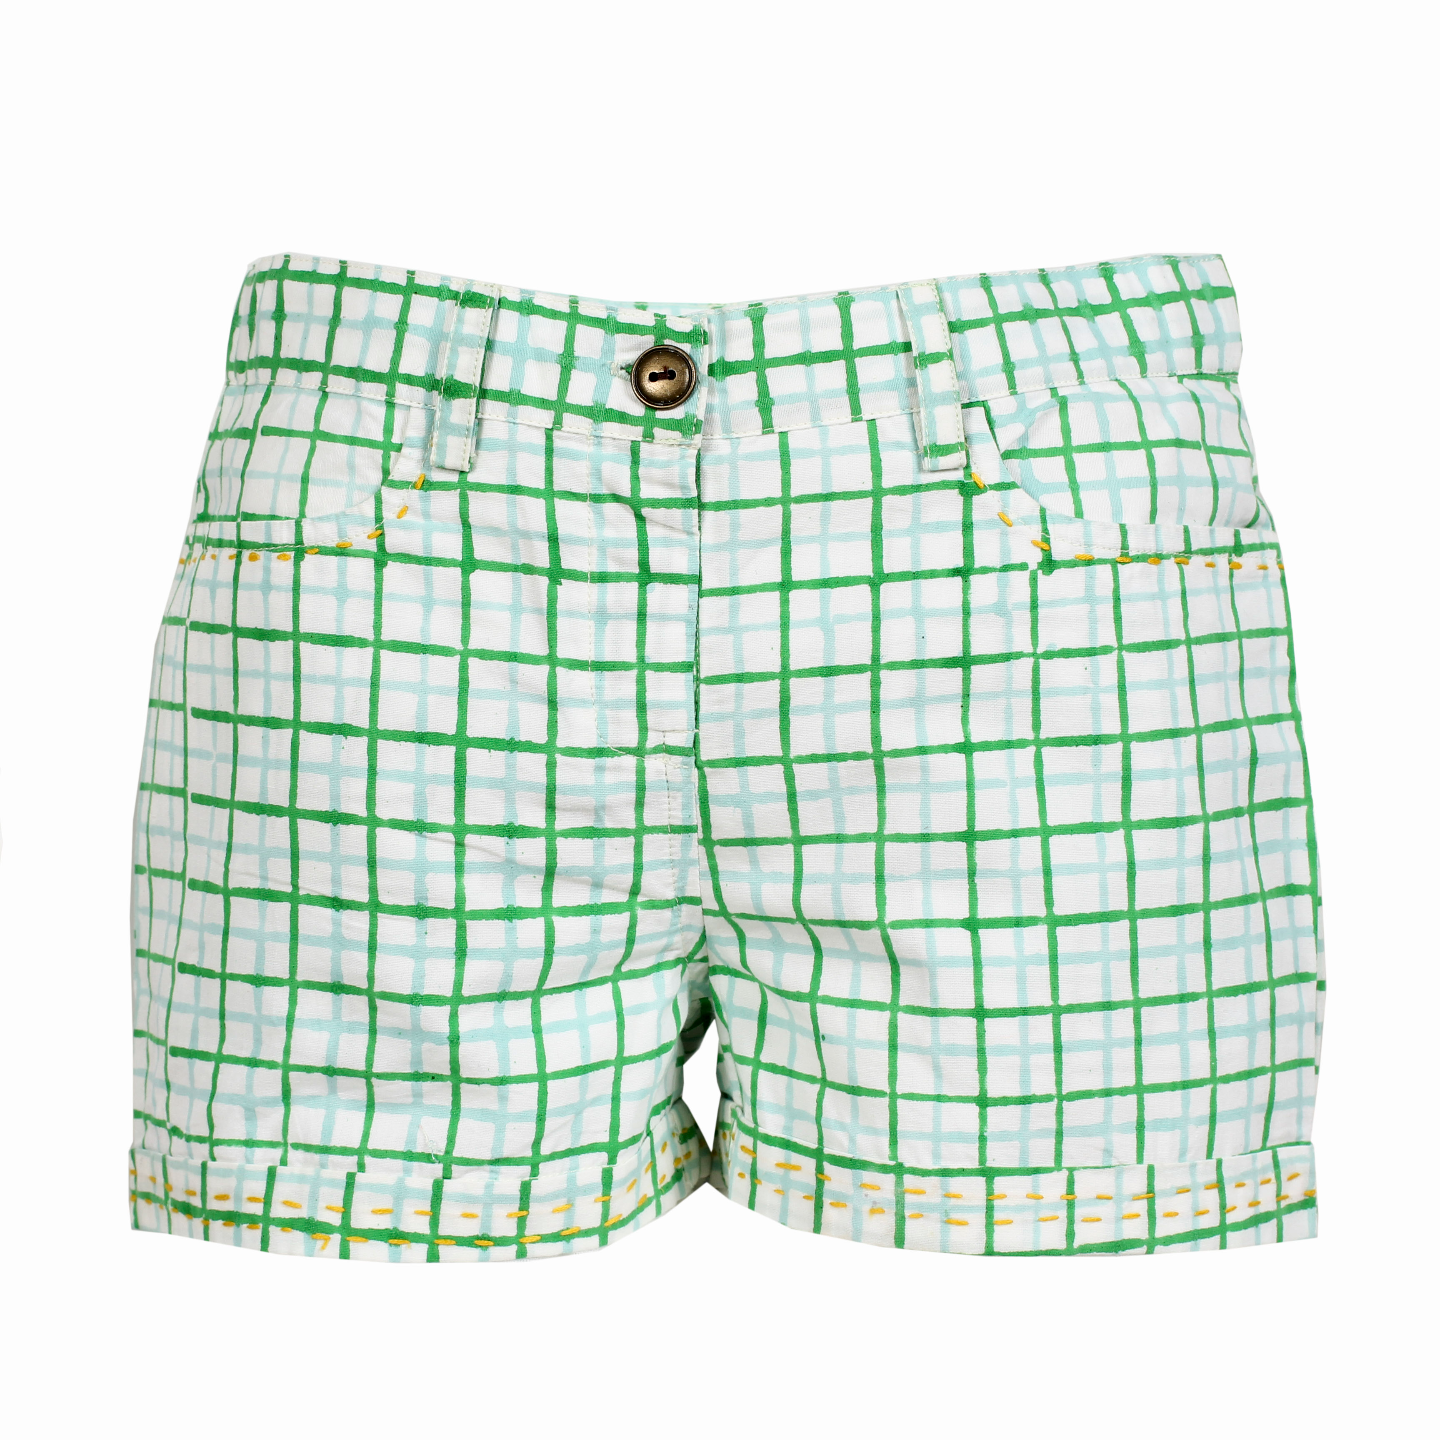 Moha Shorts - Green Checks